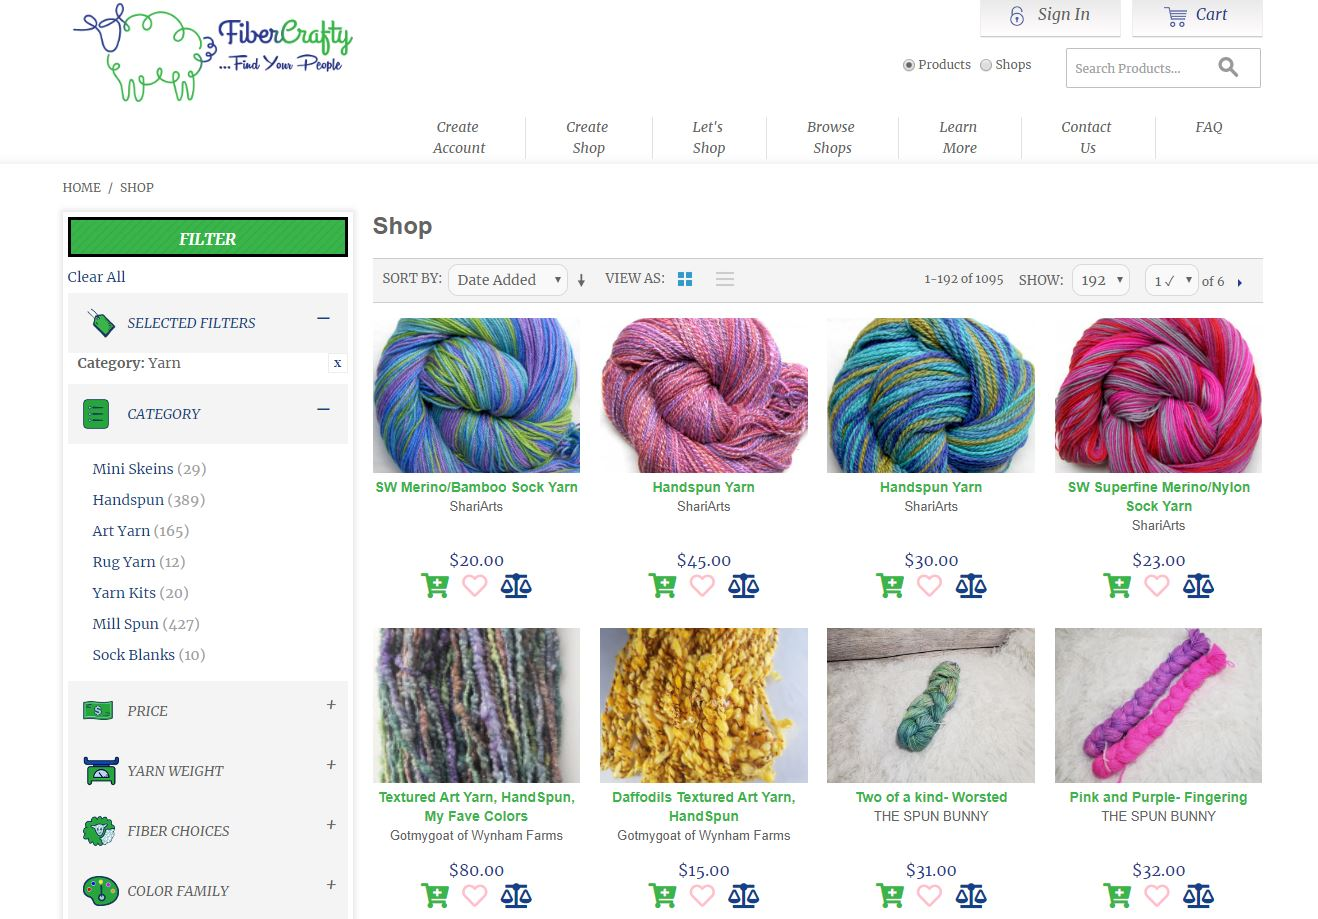 Image copyright Fibercrafty - individual products under copyright of shop owners